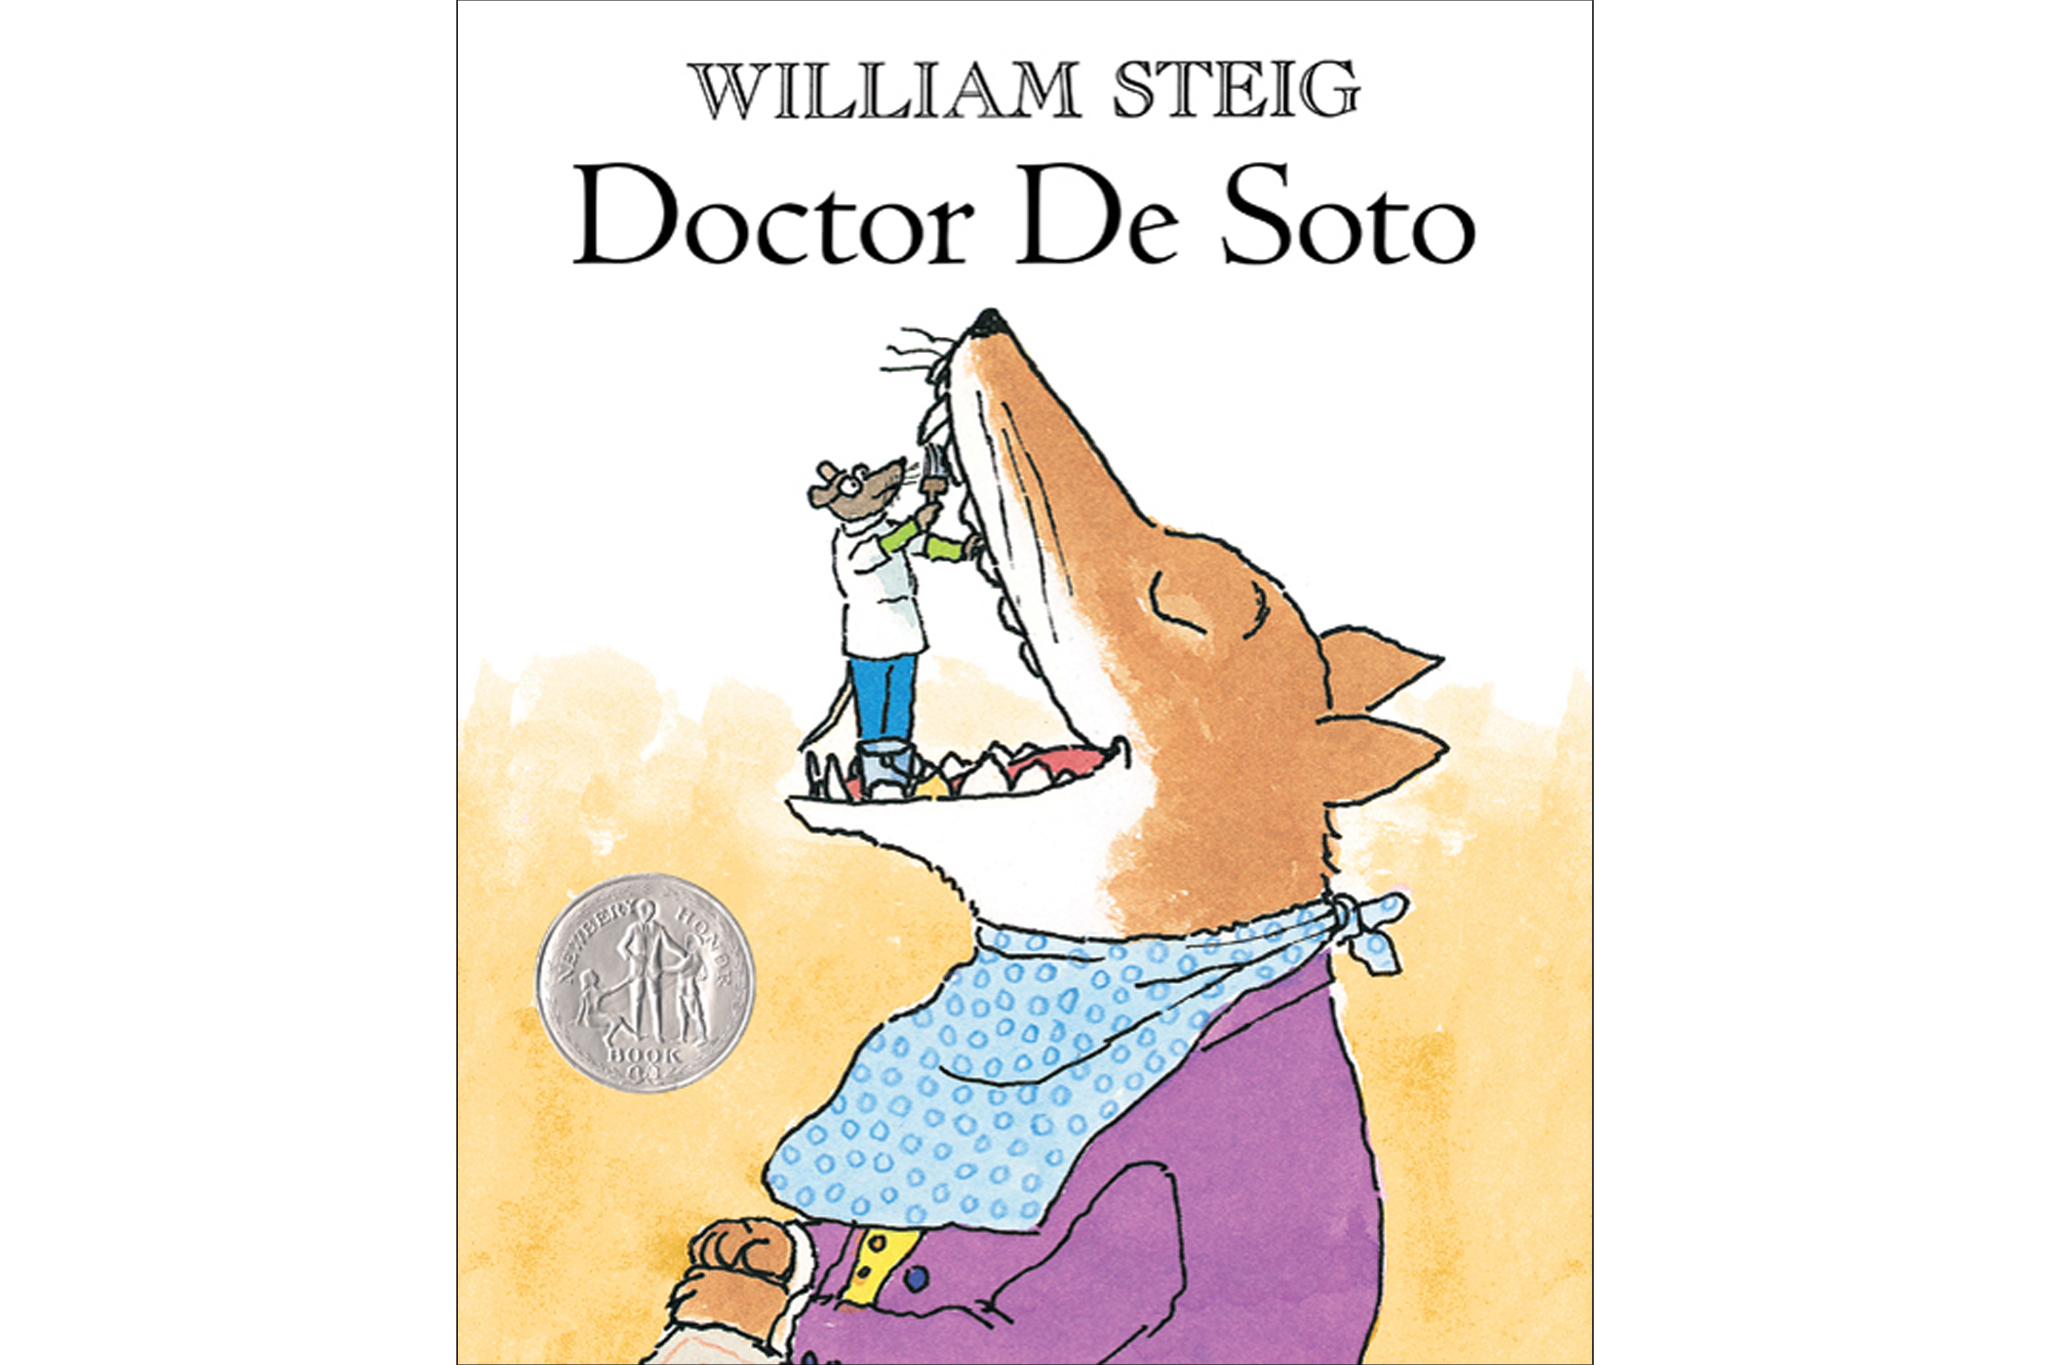 Doctor De Soto by William Steig